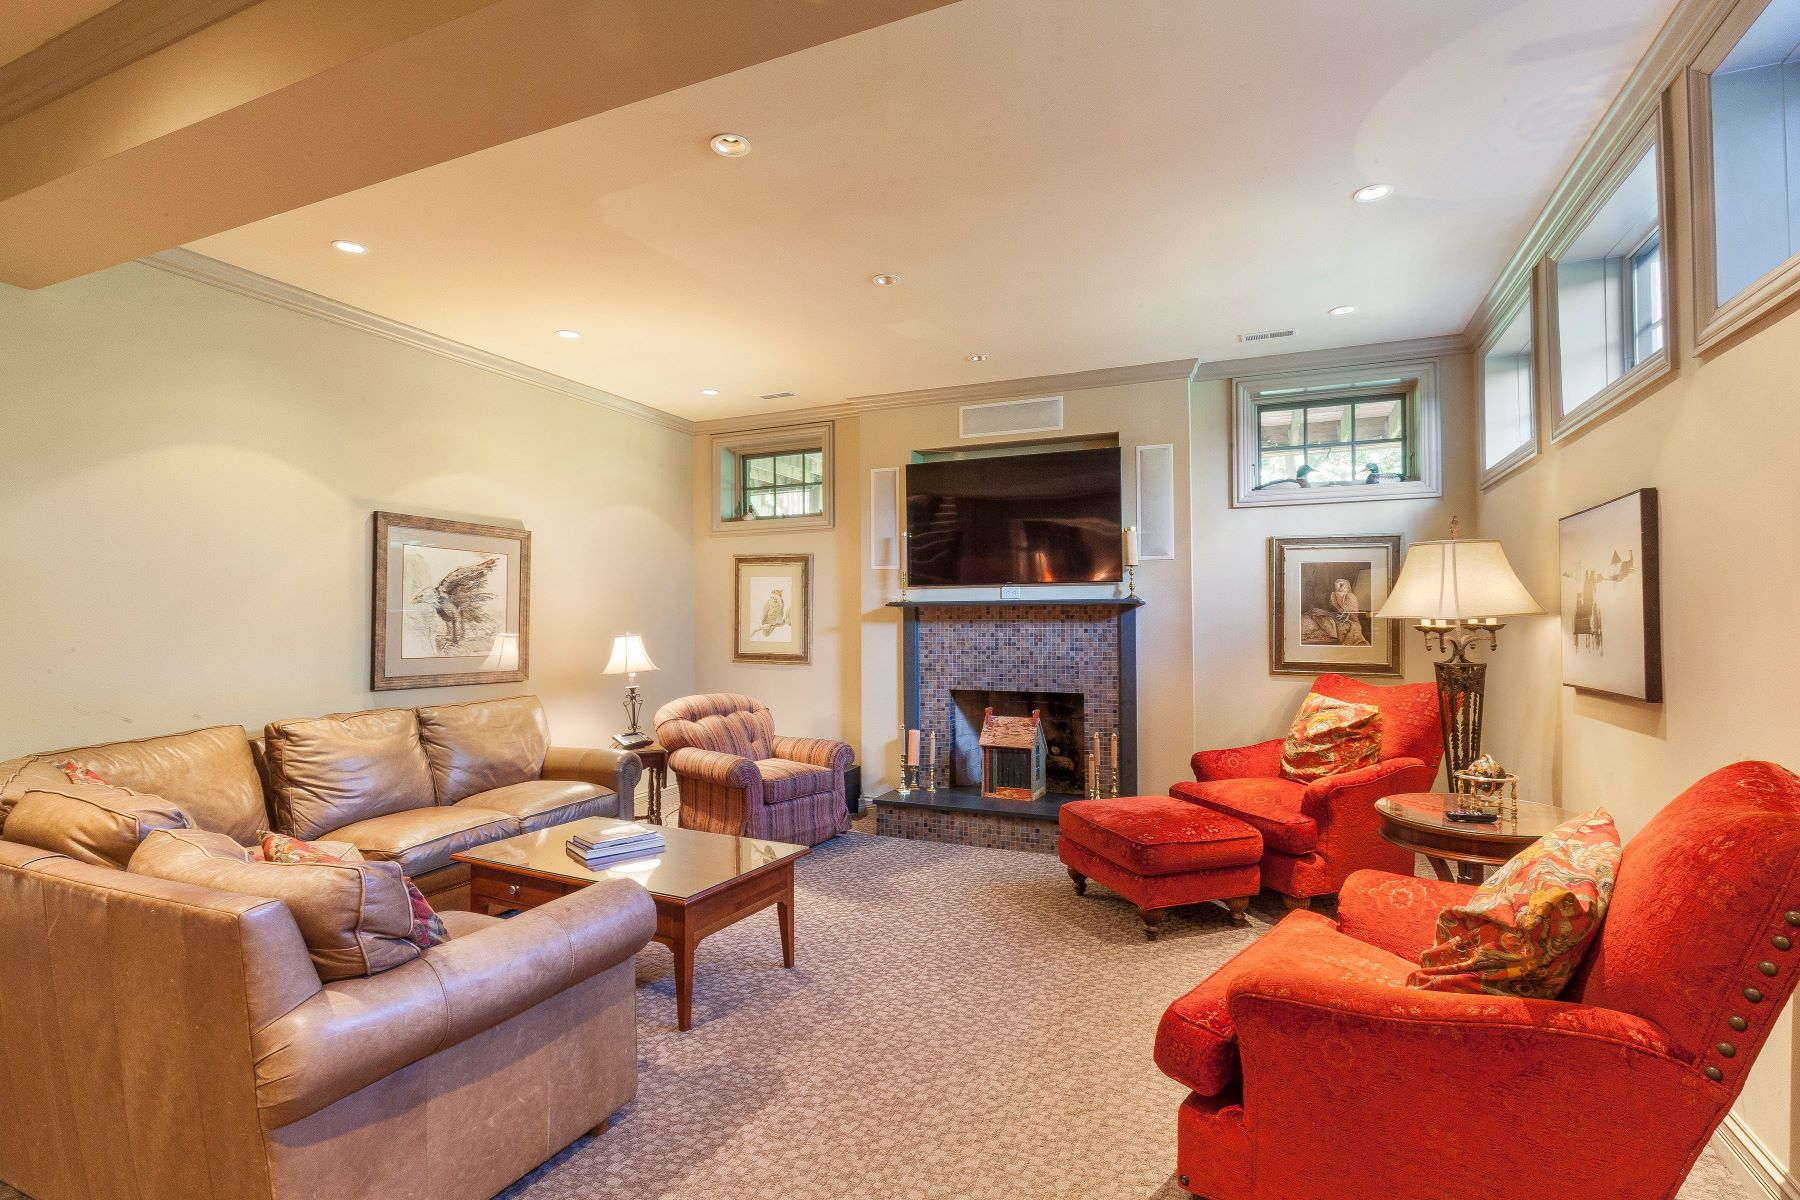 Additional photo for property listing at 25 Deerfield Road Ladue, Missouri 63124 United States